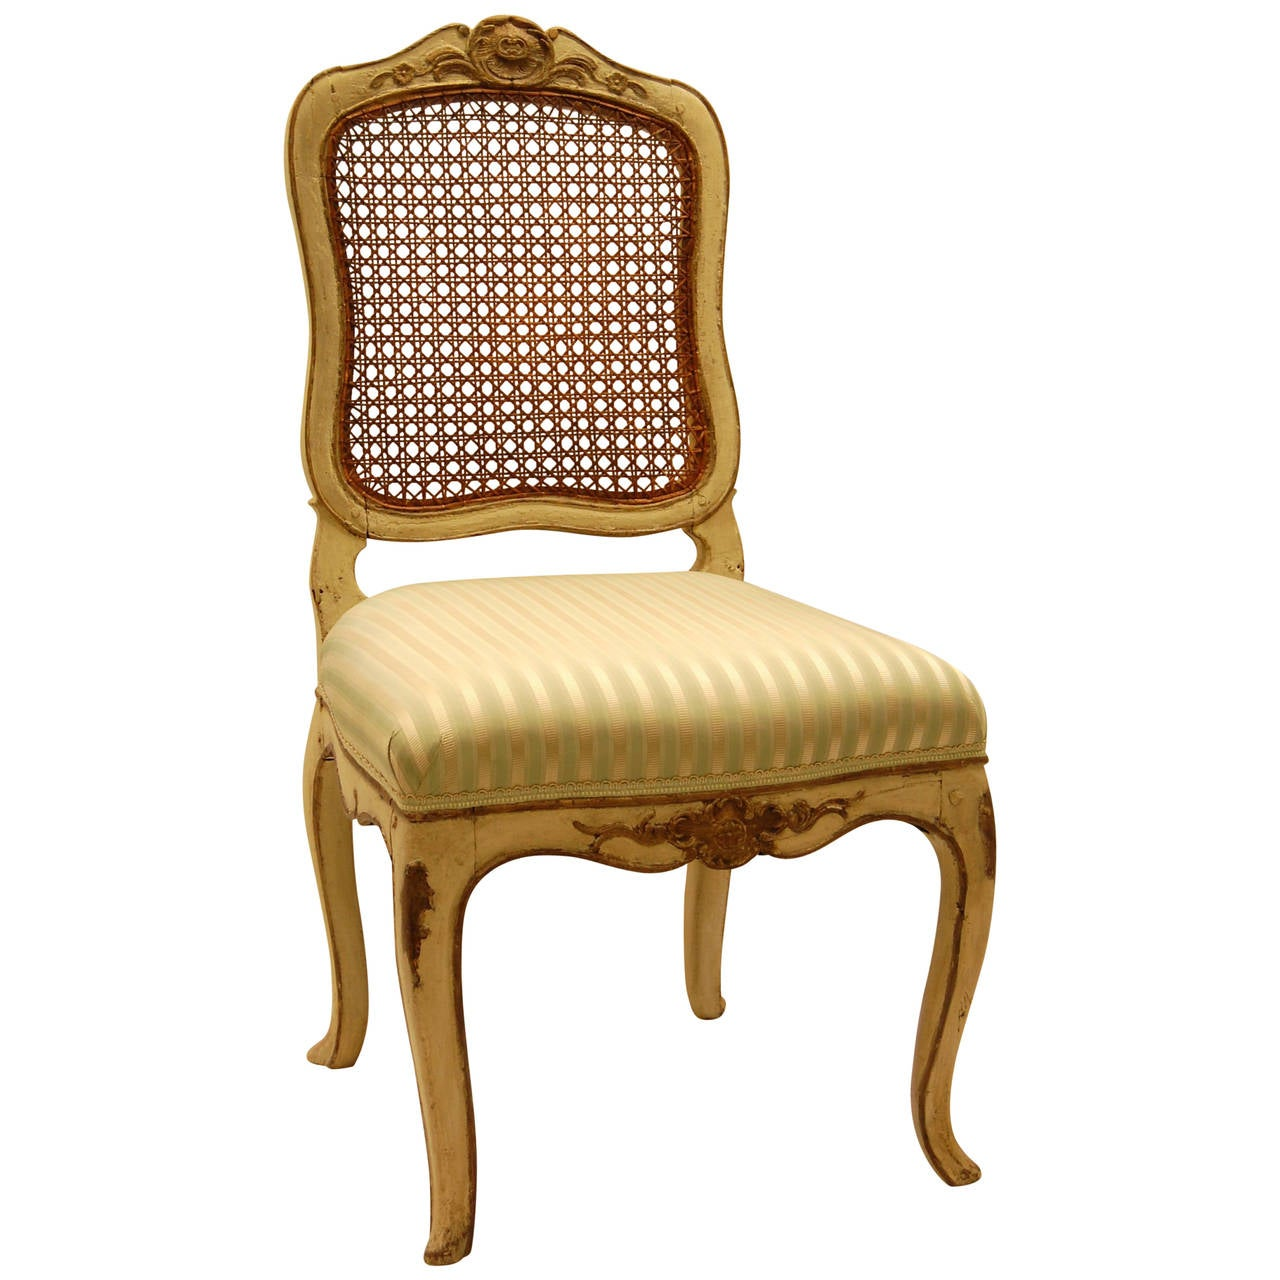 louis xv style chair with hand caned back in original off white painted finish for sale at 1stdibs. Black Bedroom Furniture Sets. Home Design Ideas